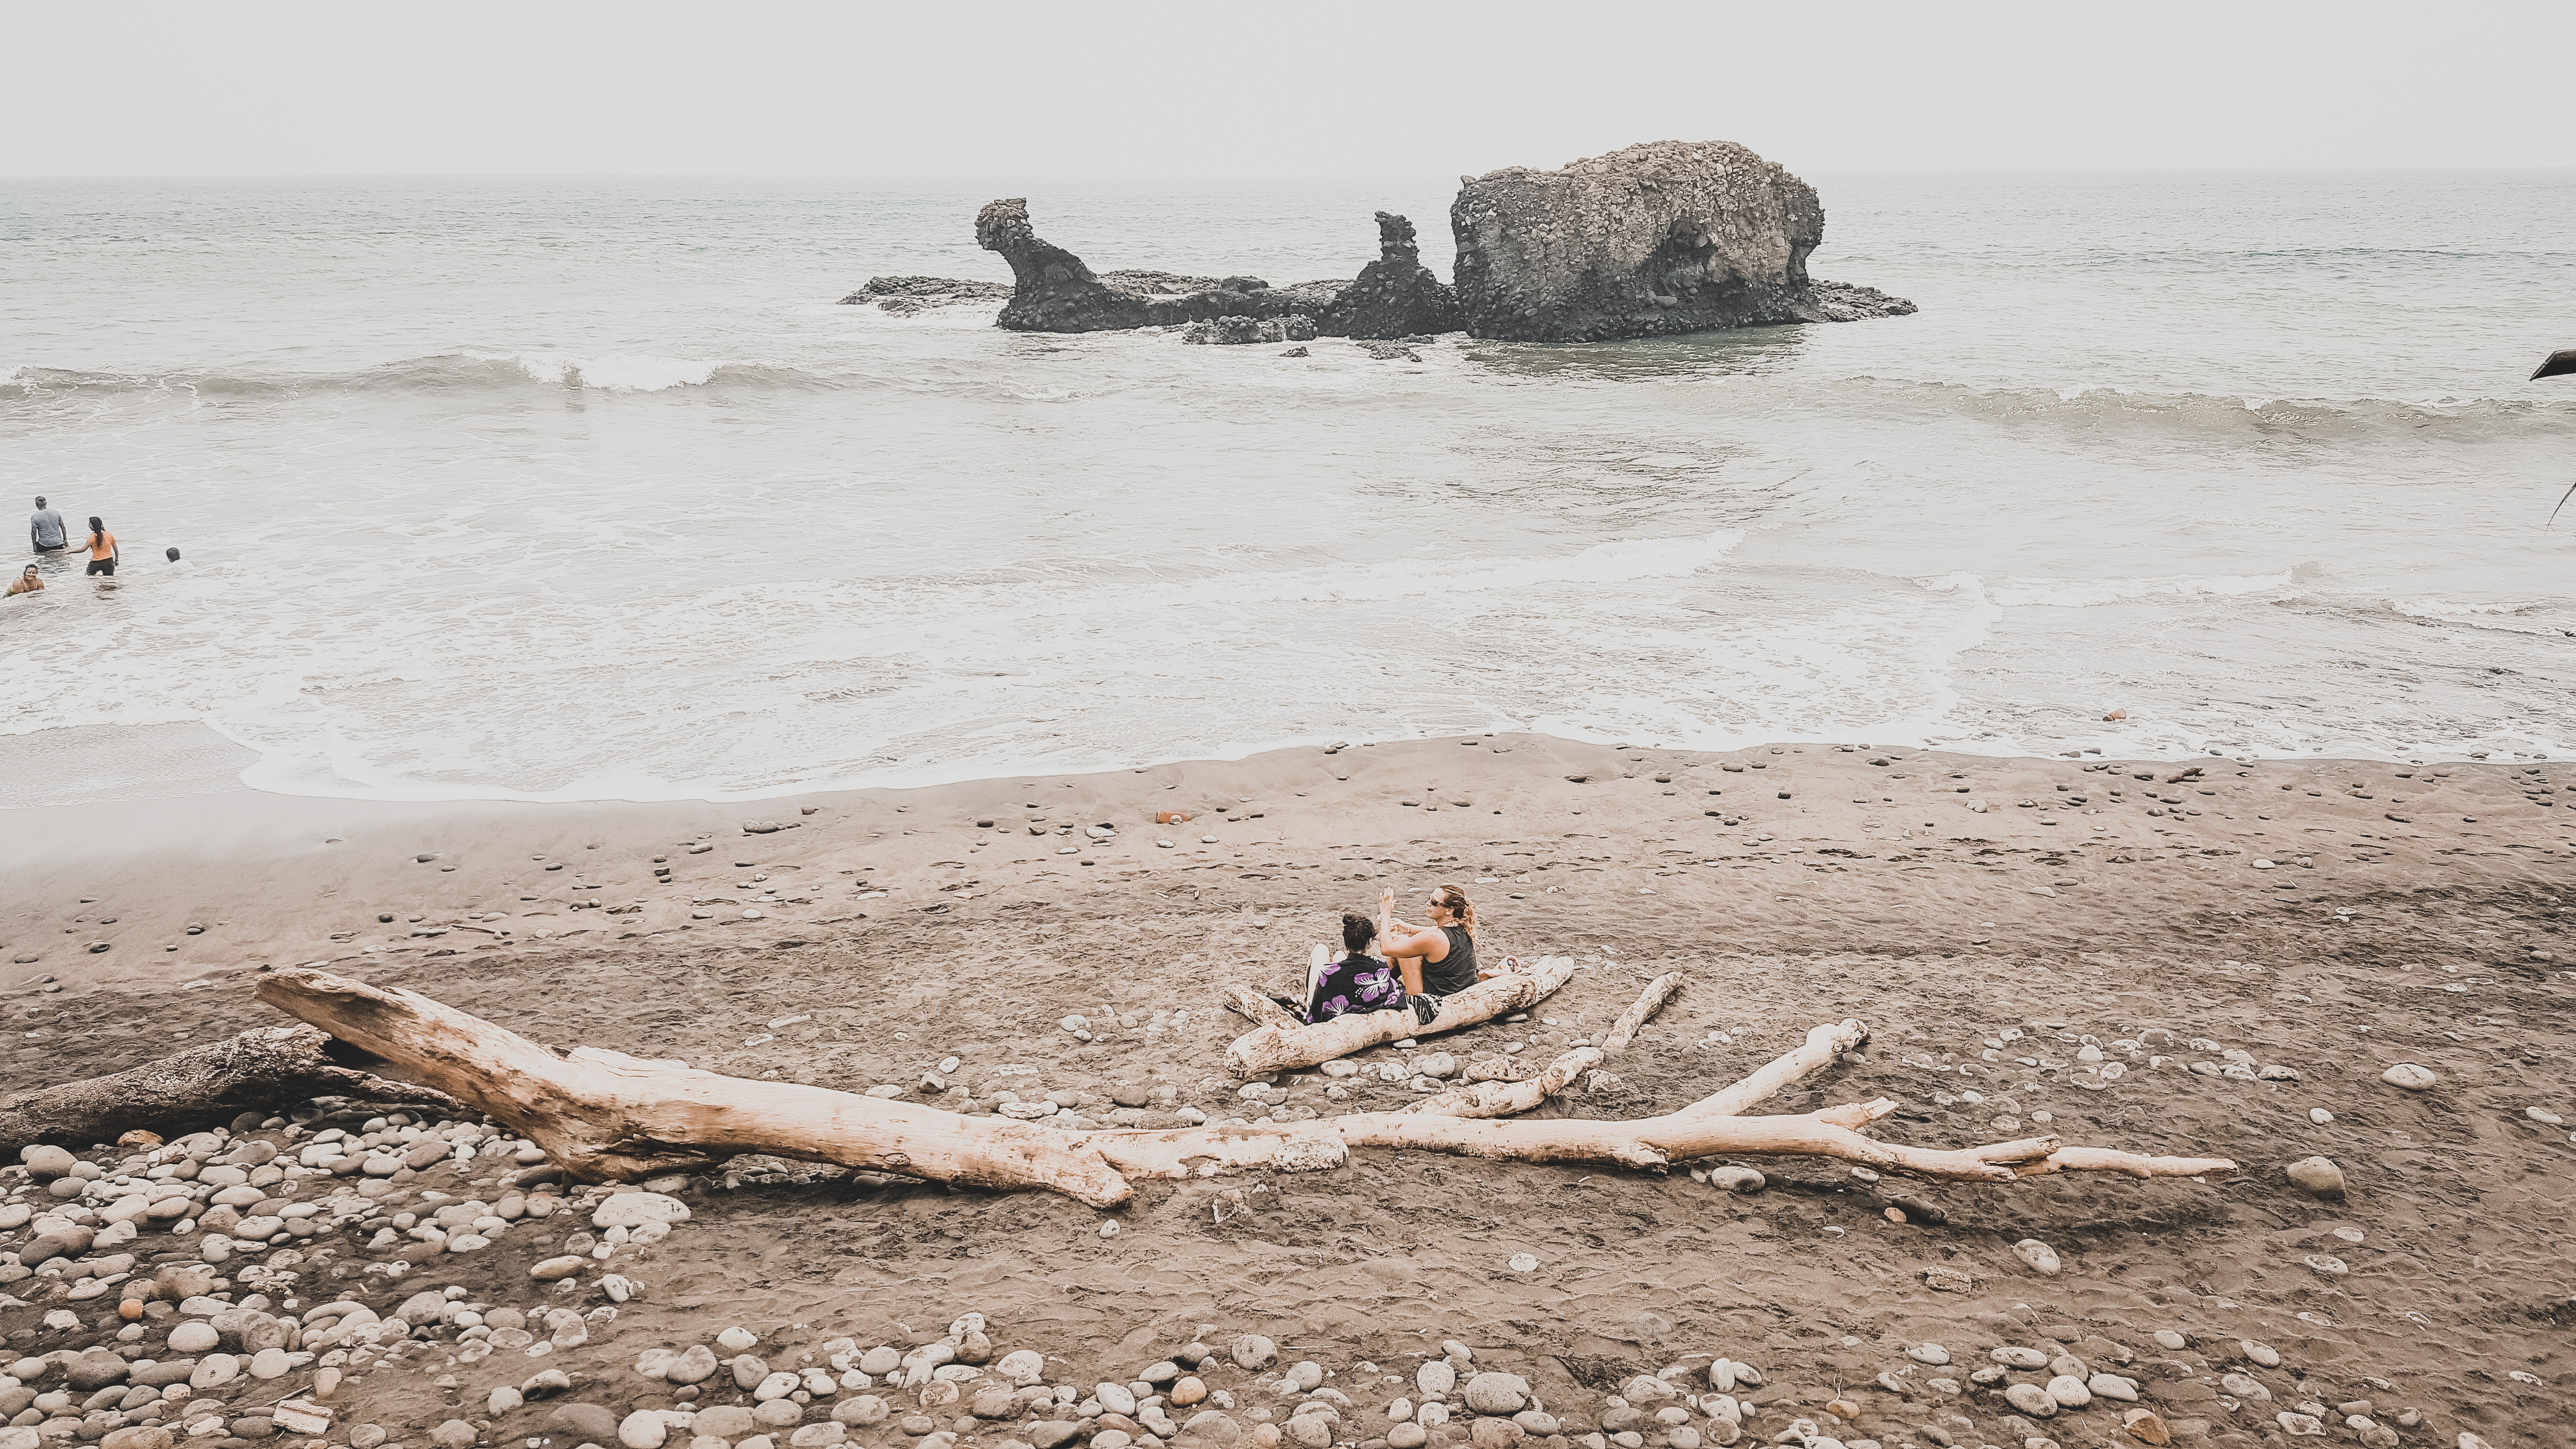 People hanging out on a beach sitting on driftwood and swimming in the ocean